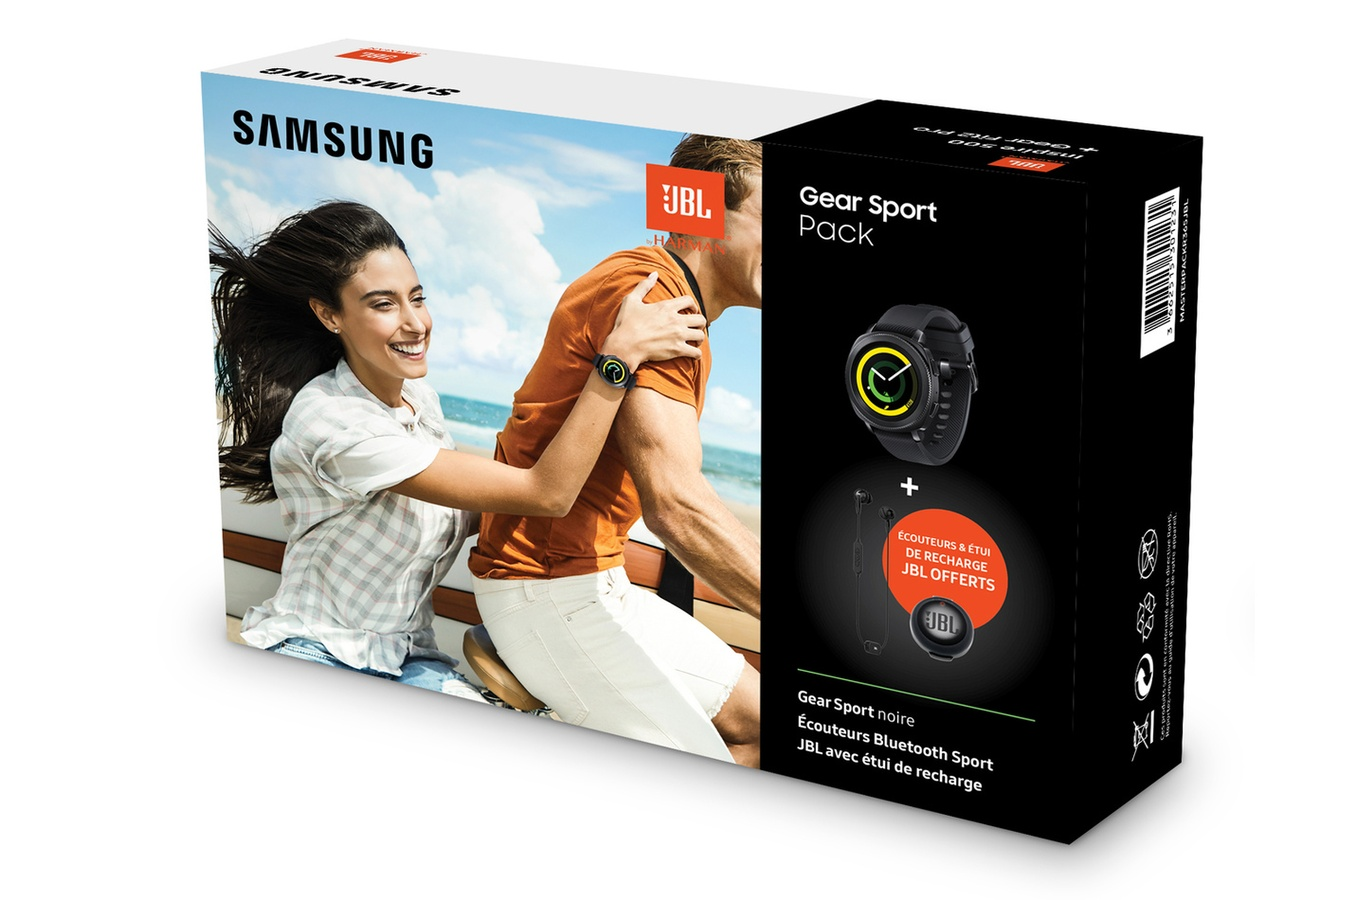 bon plan un pack samsung gear sport avec les couteurs jbl inspire 700 299 euros frandroid. Black Bedroom Furniture Sets. Home Design Ideas